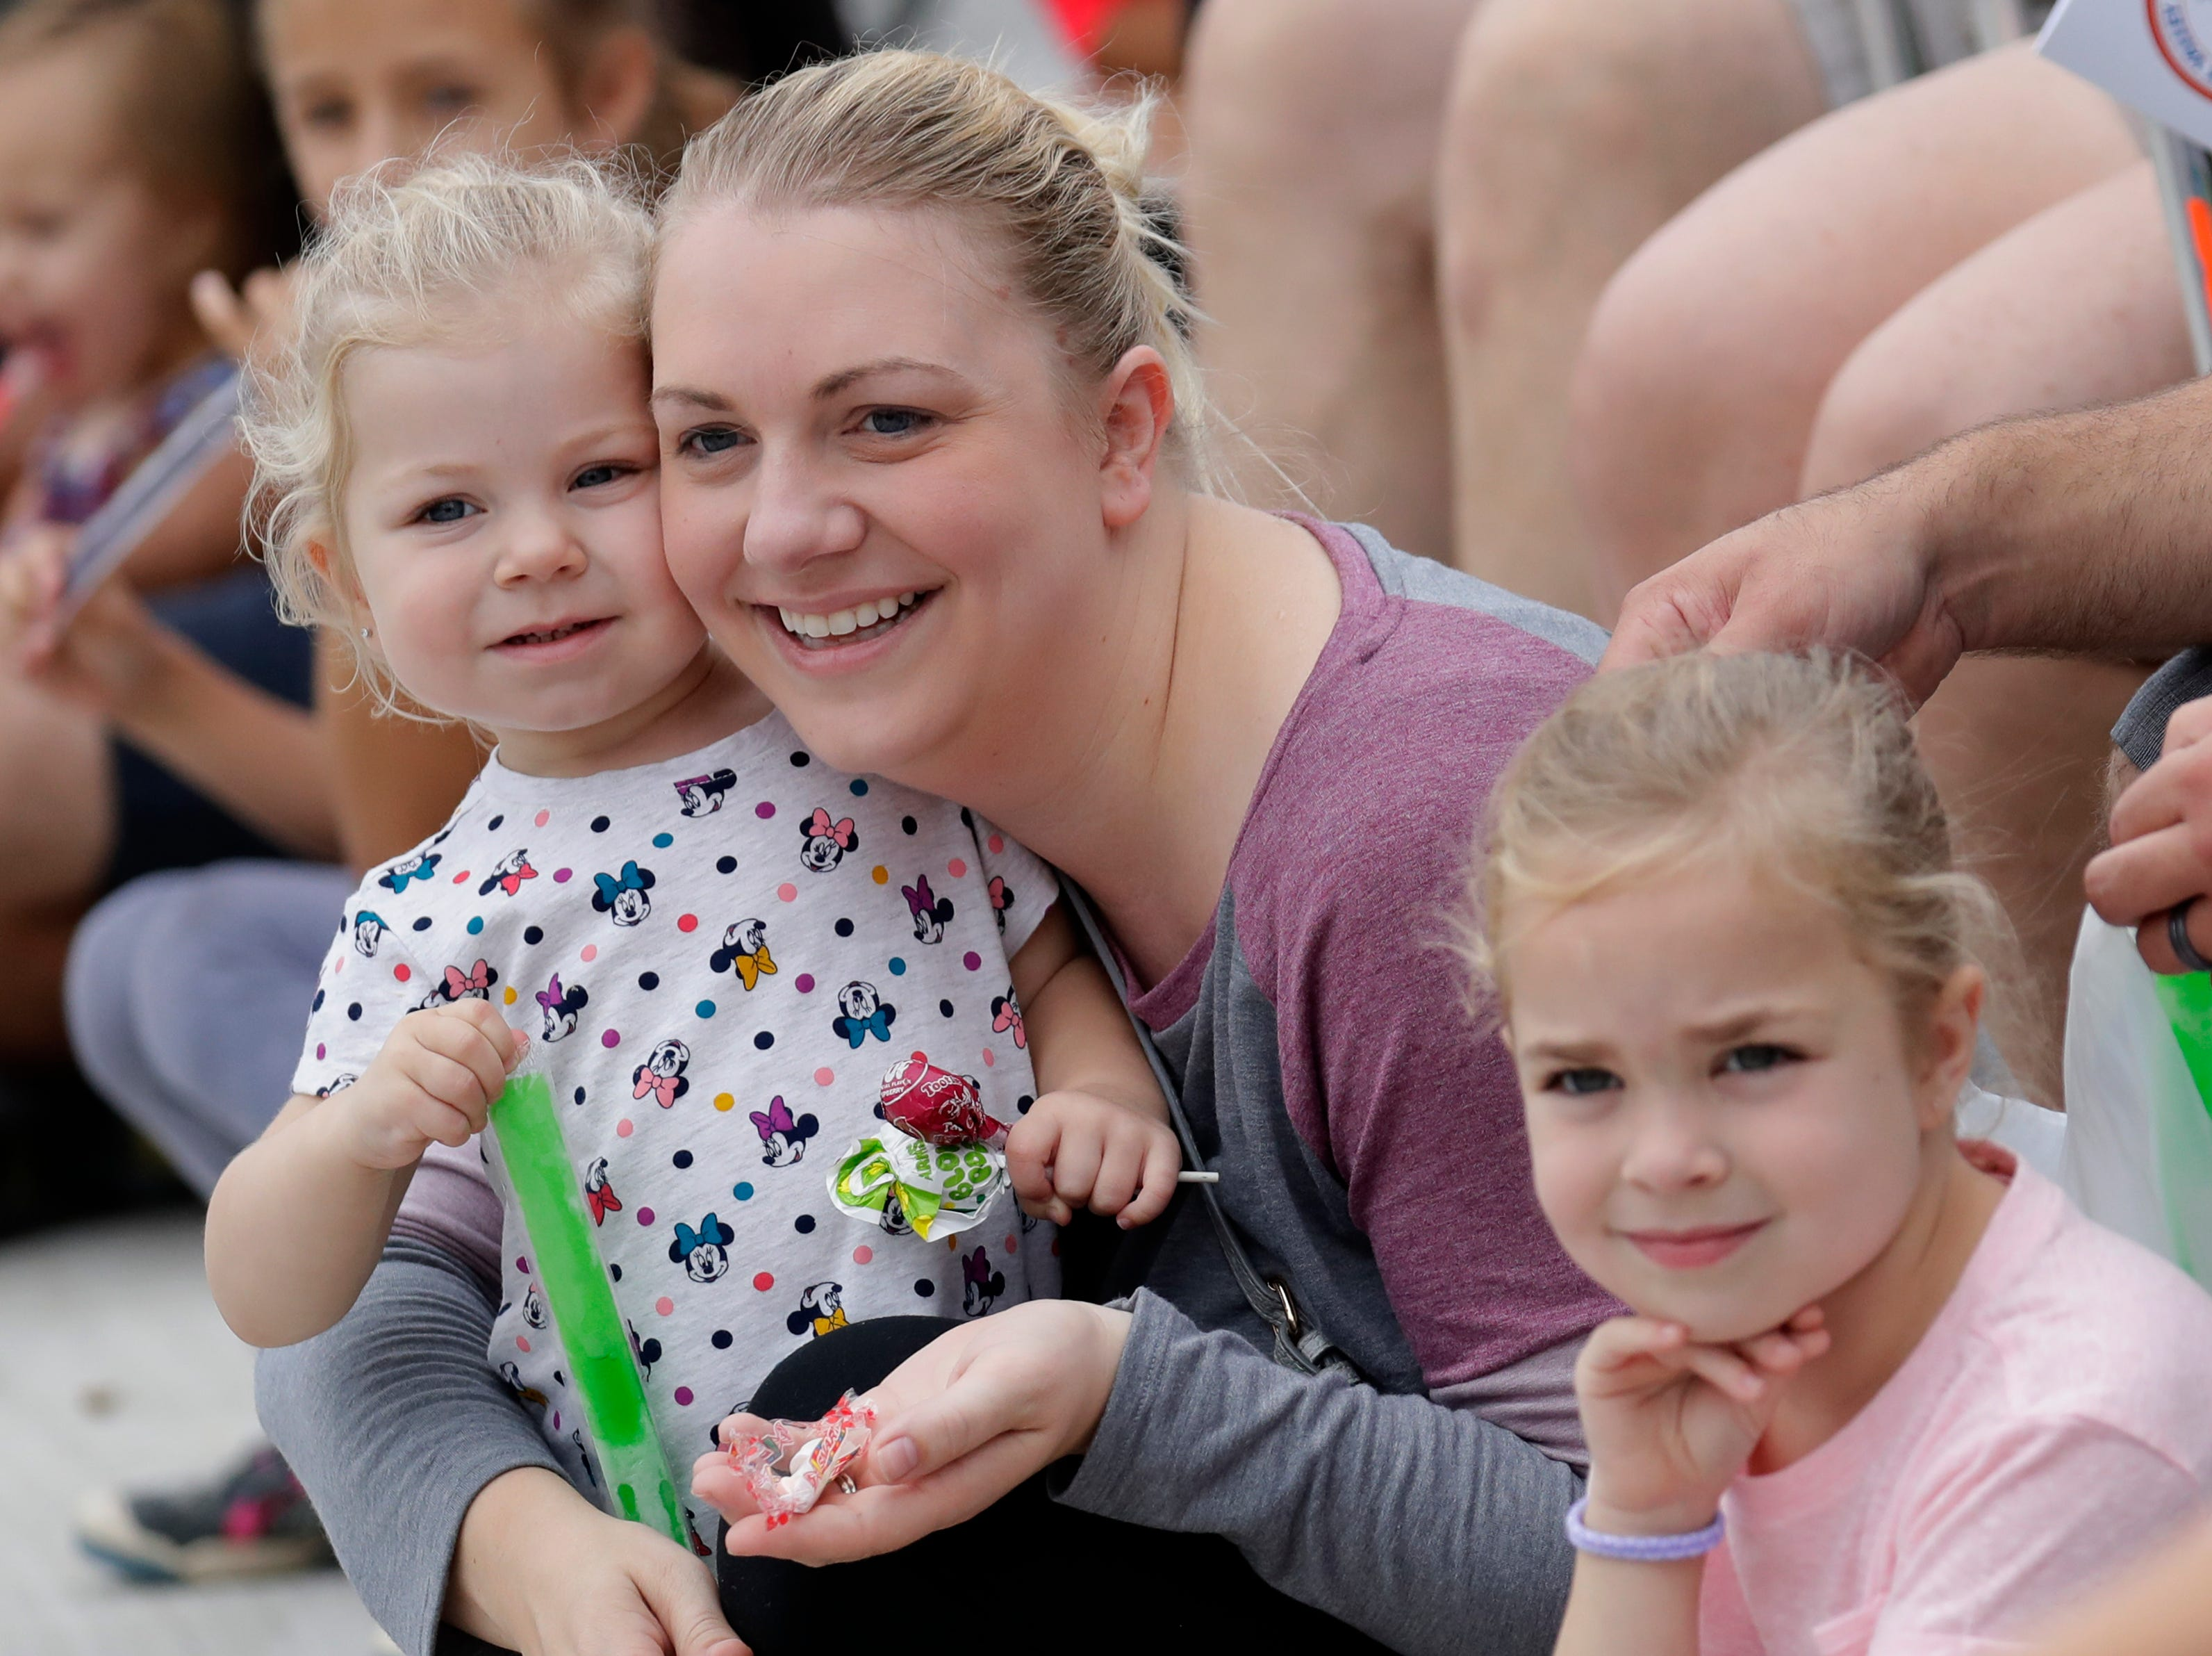 Ashley Landskrom of Greenville and her daughters Olivia, 2, left, and Emma, 5, right, enjoy the Neenah-Menasha Labor Day Parade Monday, Sept. 3, 2018, in downtown Menasha, Wis. 